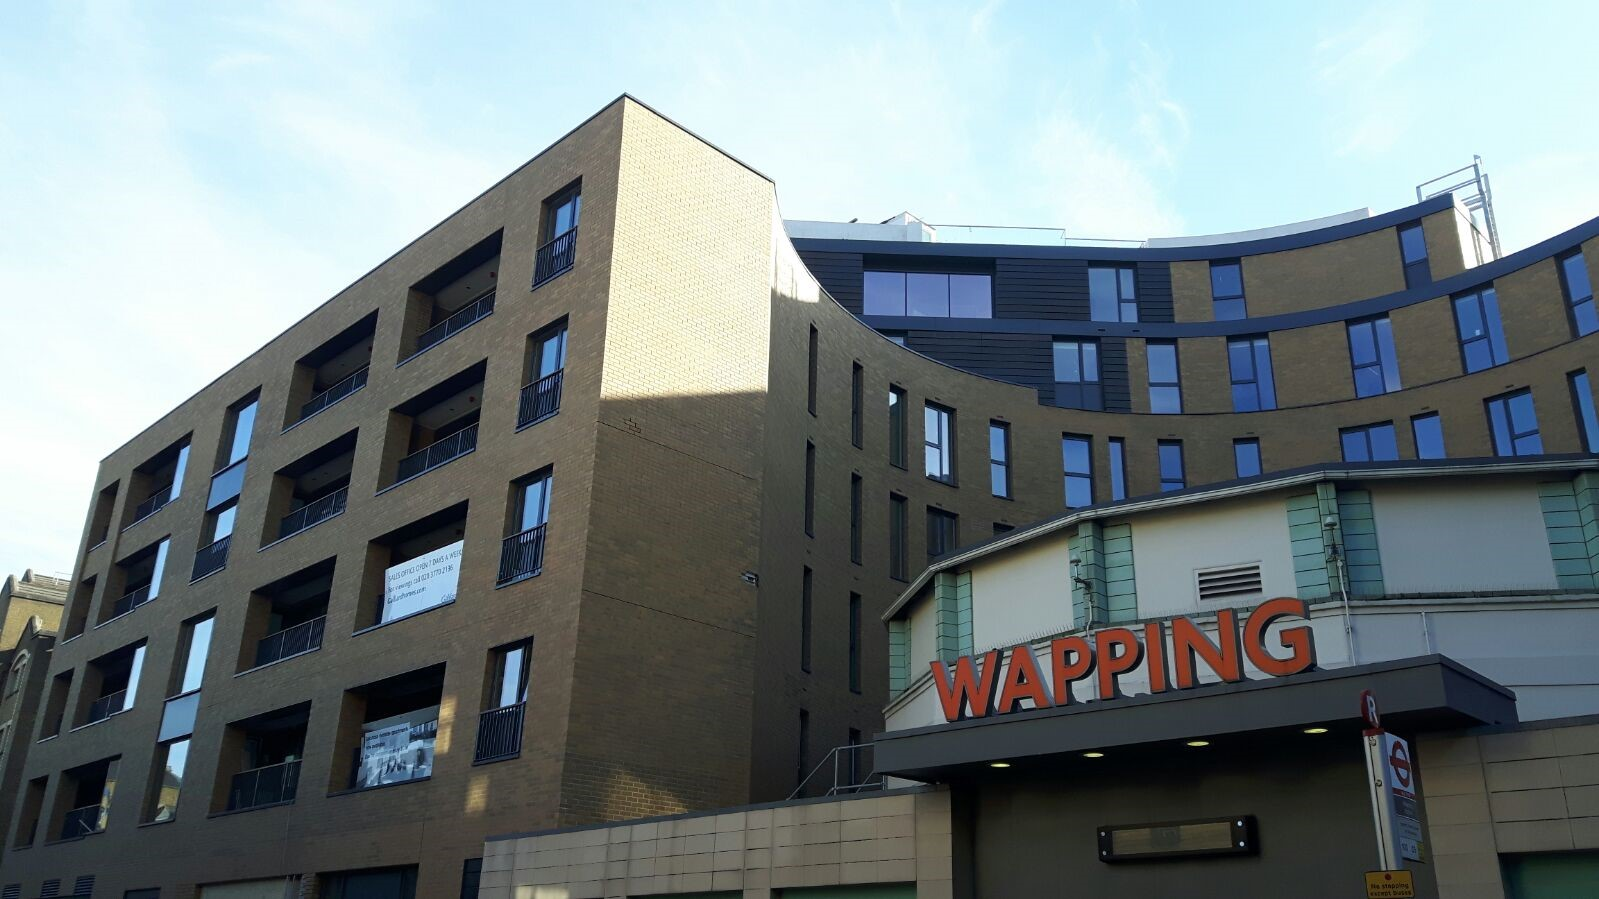 WAPPING3